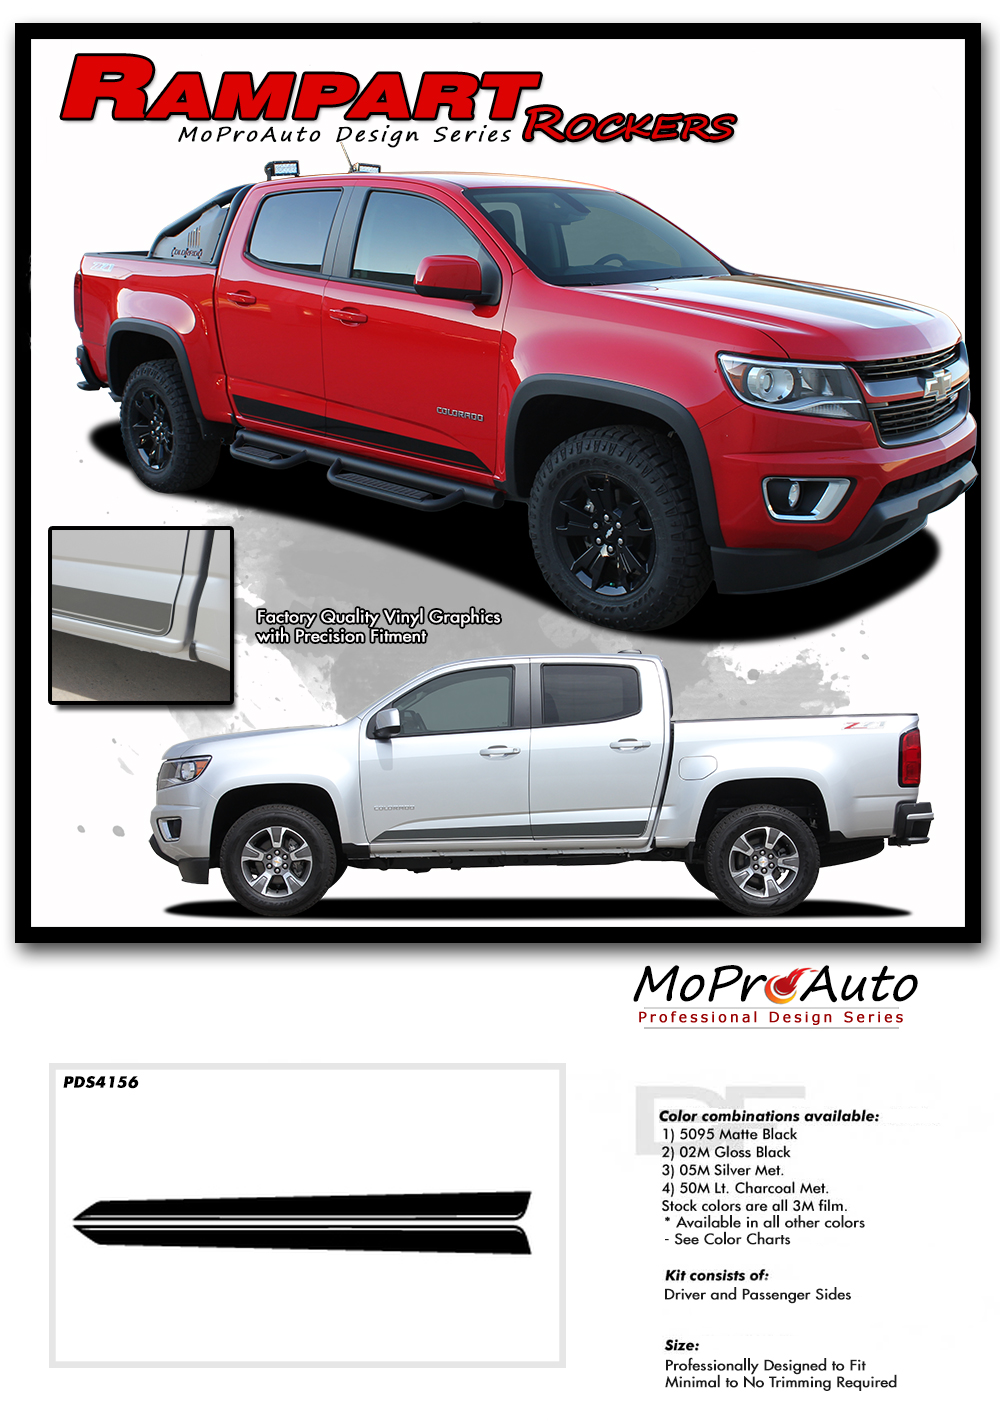 2015 2016 2017 2018 2019 2020 2021 RAMPART CHEVY COLORADO - MoProAuto Pro Design Series Vinyl Graphics, Stripes and Decals Kit